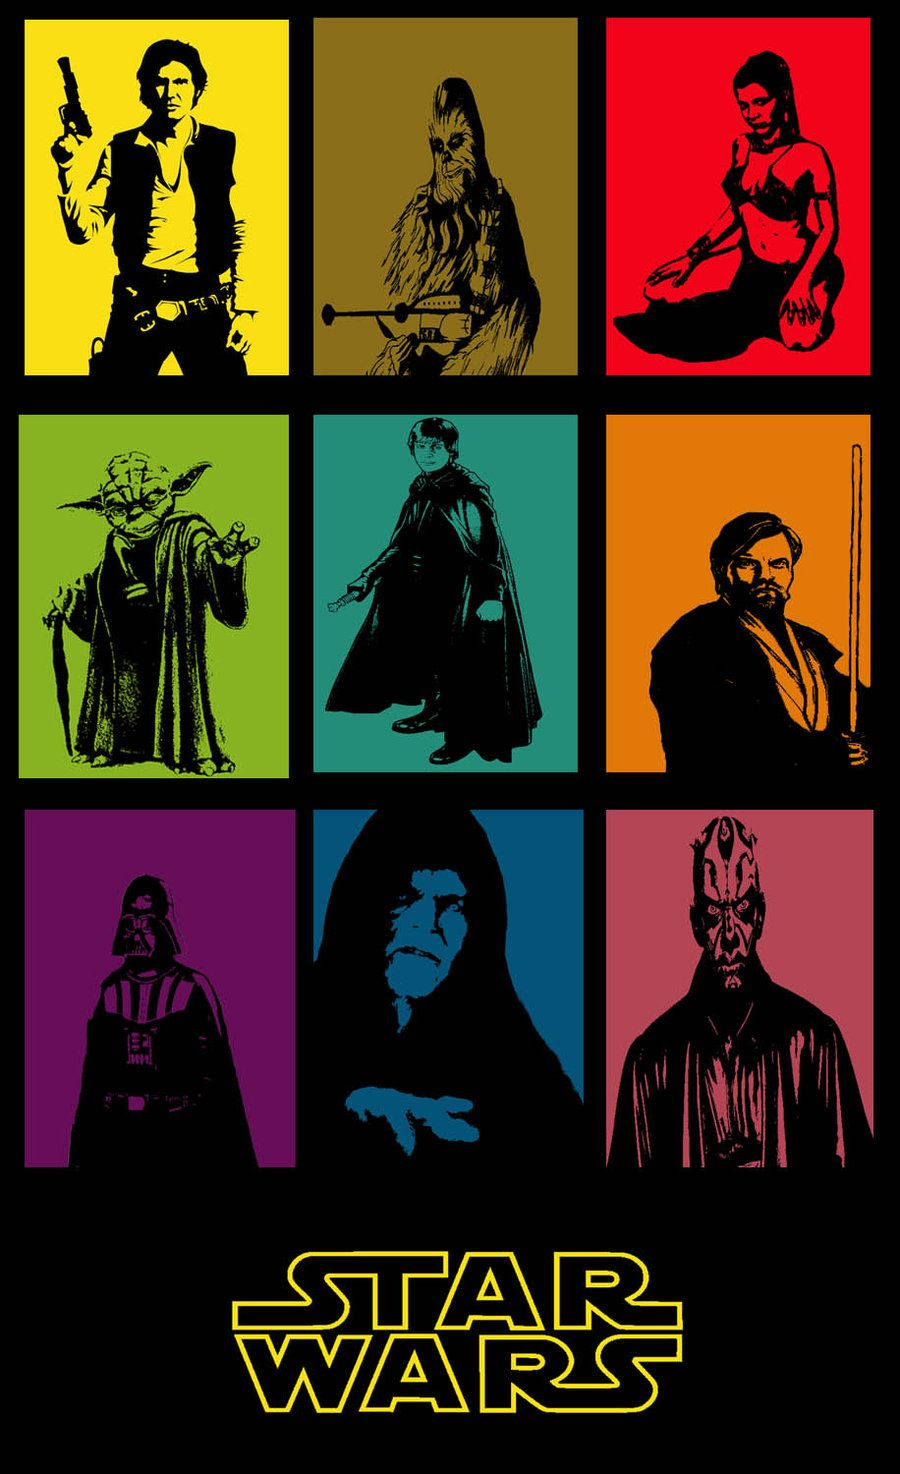 star wars popart poster it pinterest star starwars and star wars stuff. Black Bedroom Furniture Sets. Home Design Ideas